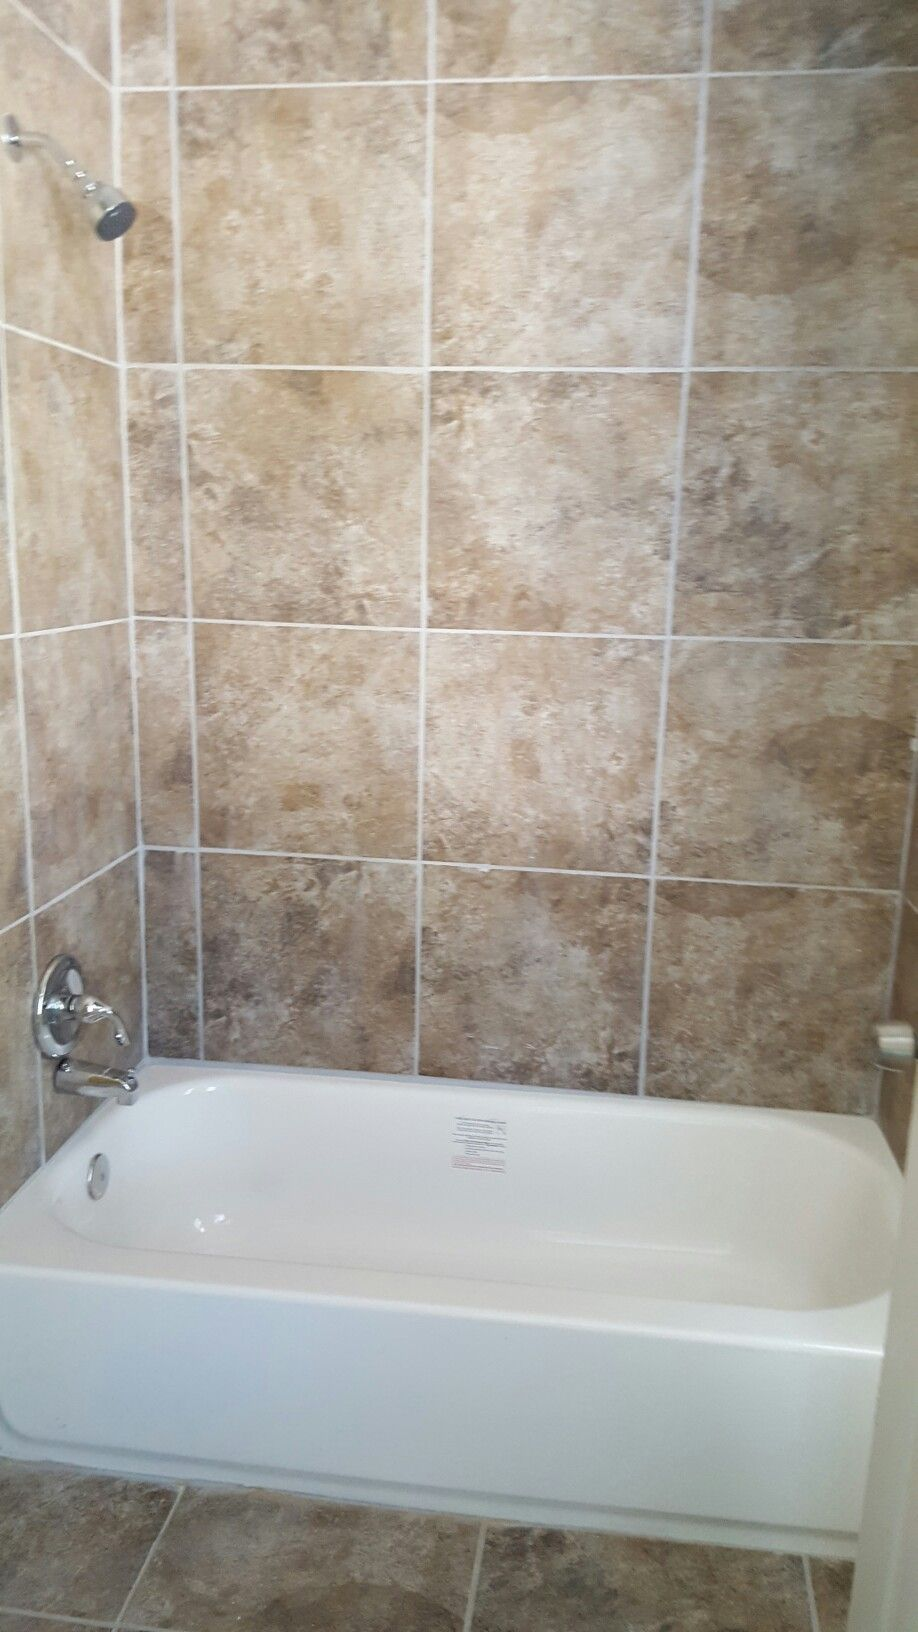 Matching Wall And Floor Tiles In Stone Mountain Ga Home Tile Bathroom Old Bathrooms Tiles